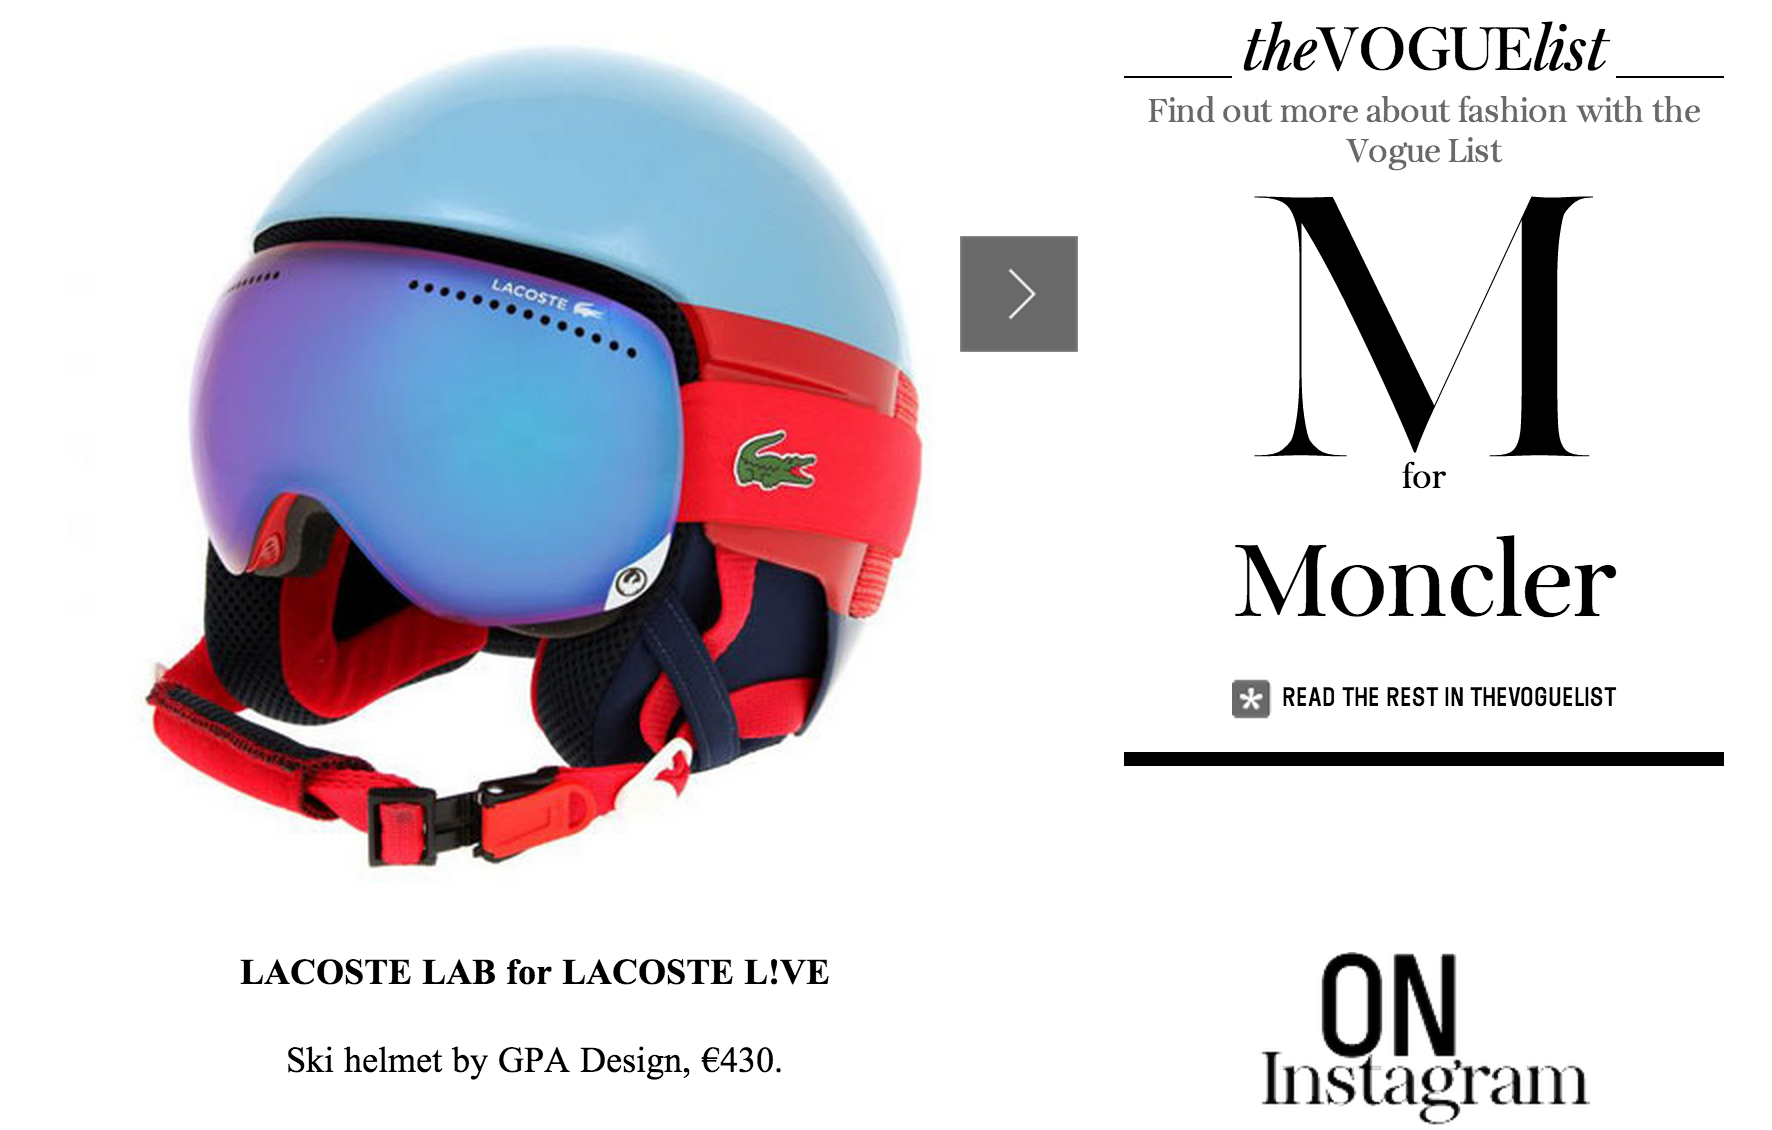 lacoste-osbe-frenchvogue2.png